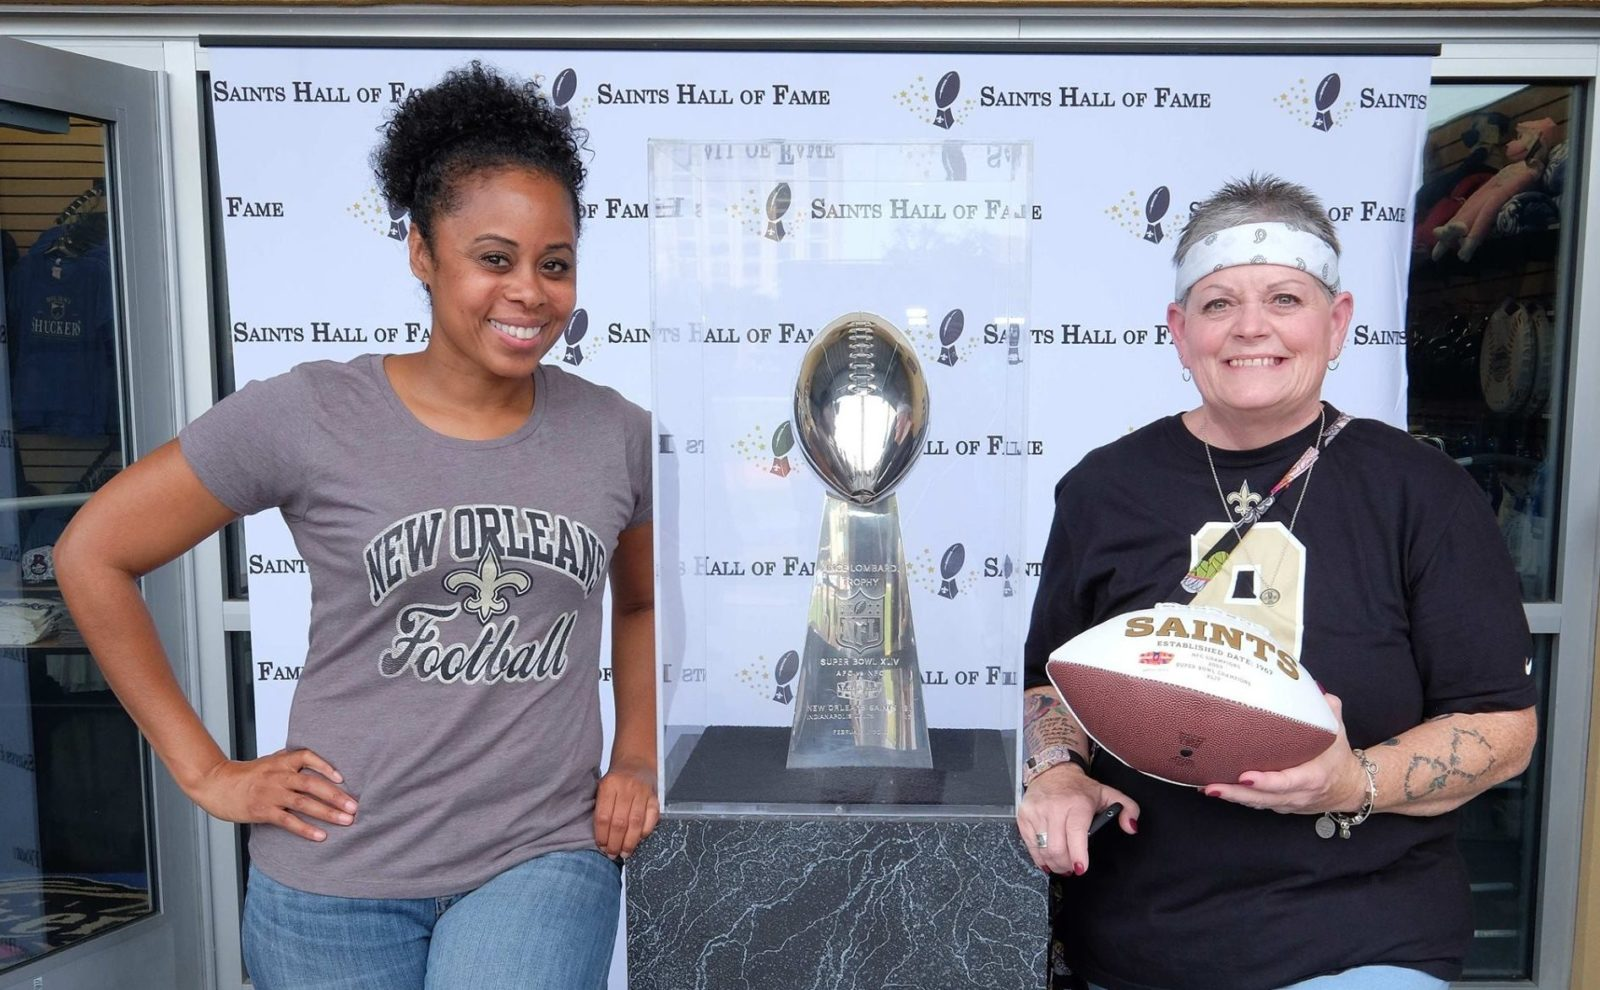 Saints Hall of Fame Weekend in Biloxi